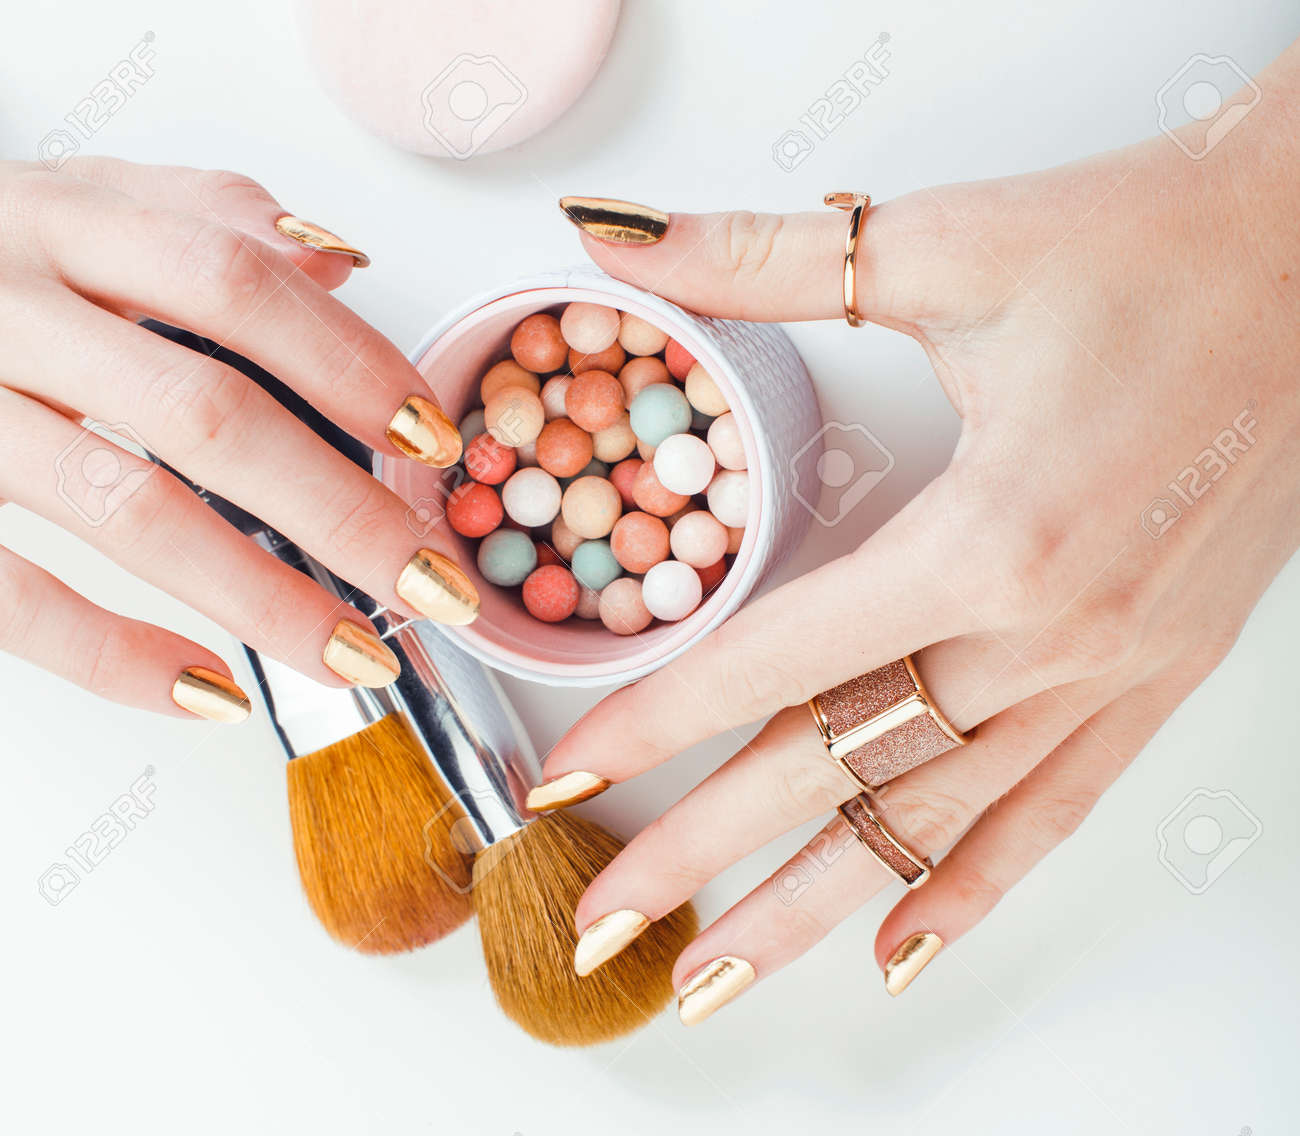 woman hands with golden manicure and many rings holding brushes, makeup artist stuff stylish, pure closeup pink flower rose among cosmetic for makeup - 151456005